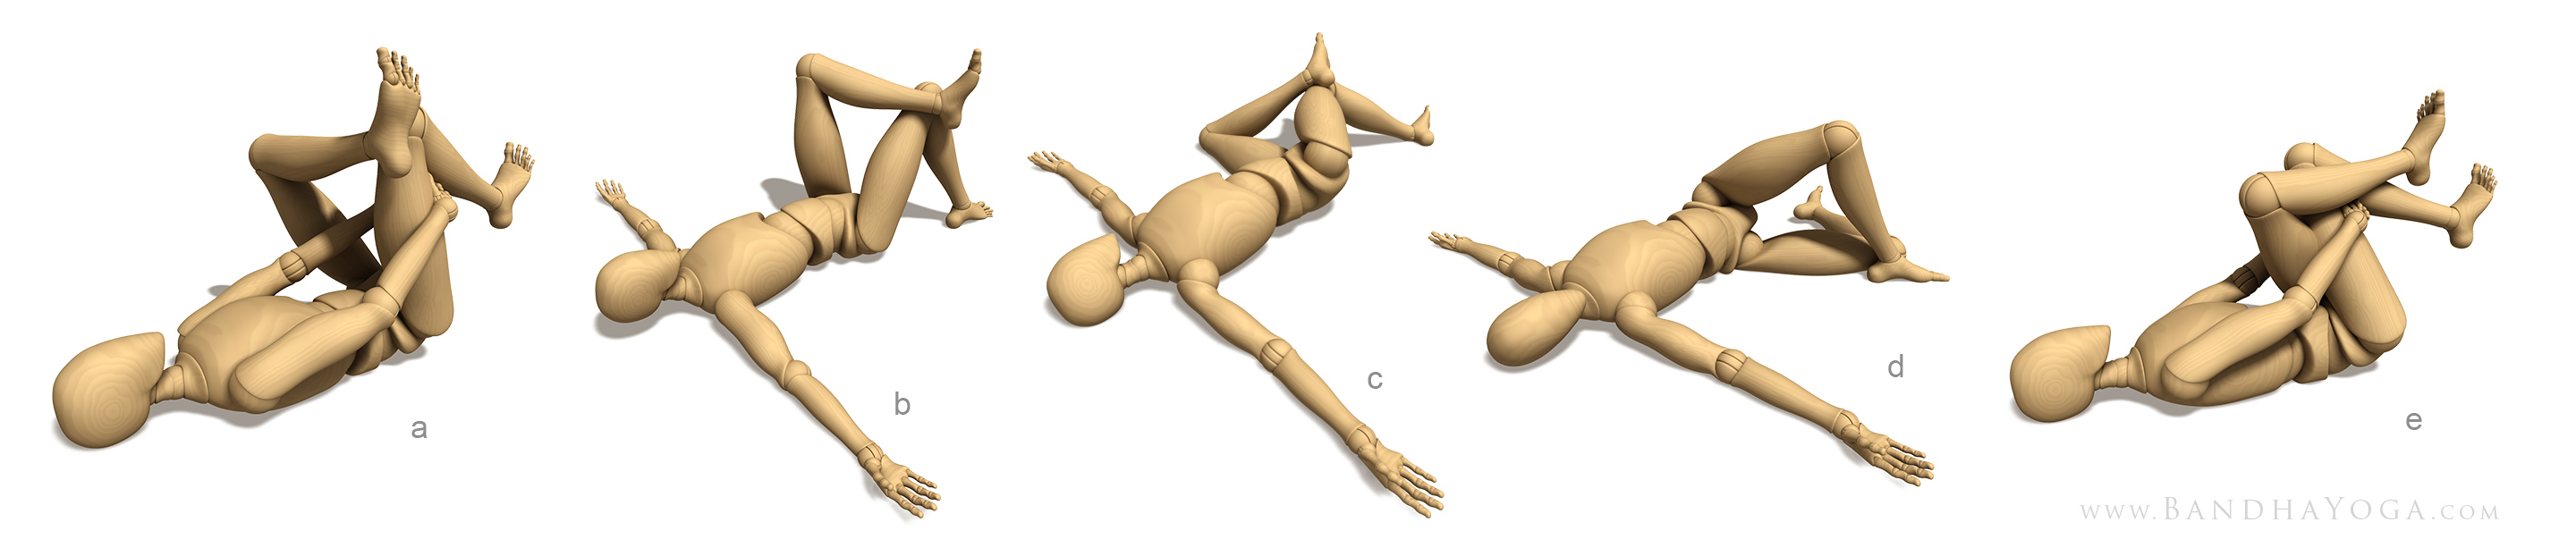 piriformis stretch variations